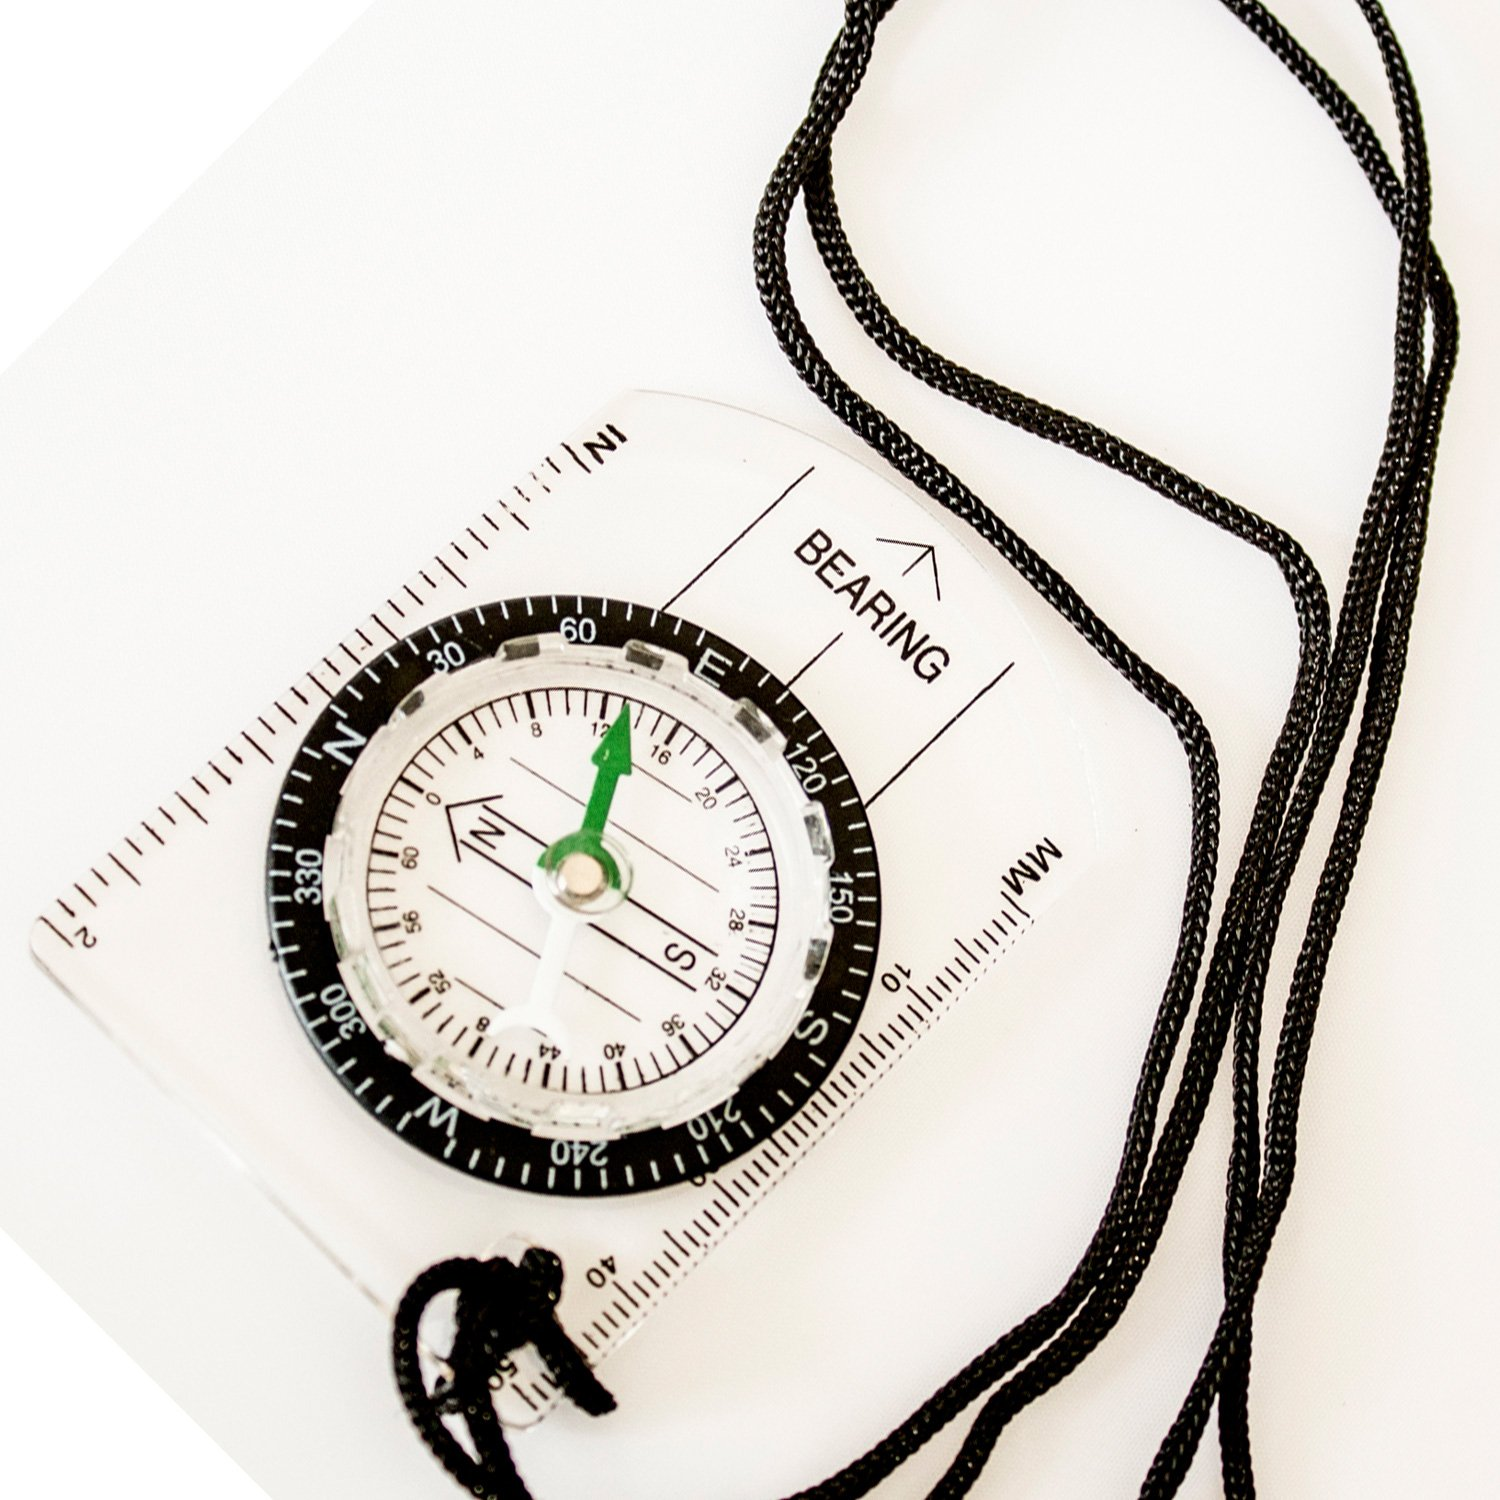 Under Control Tactical Best Sighting Compass for Camping & Outdoors - Perfect for Scouts, Kids, Just Making Learning Maps Fun!